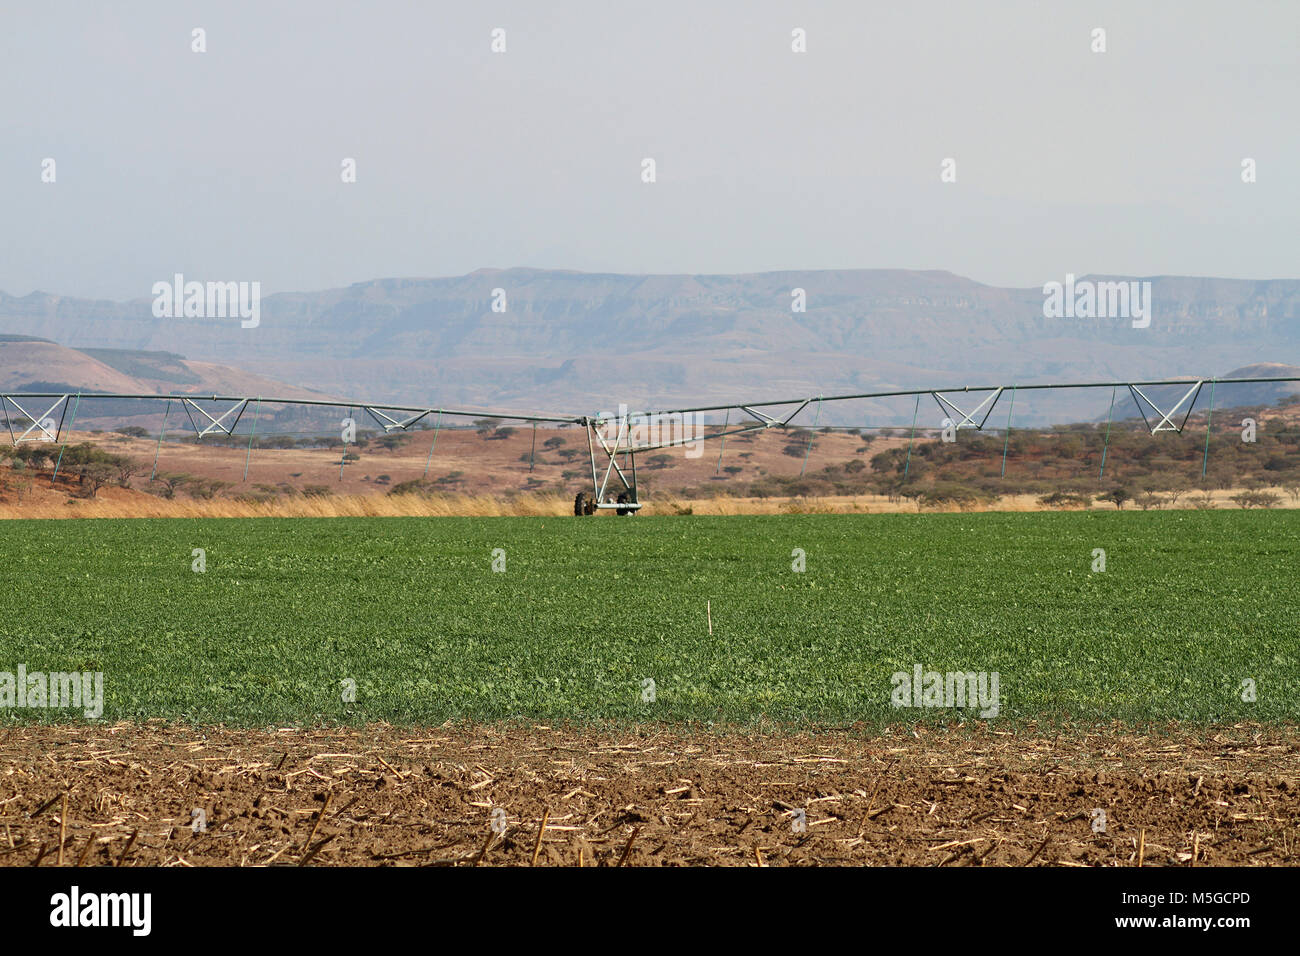 A center pivot irrigation system on farmland, Free State, South Africa - Stock Image